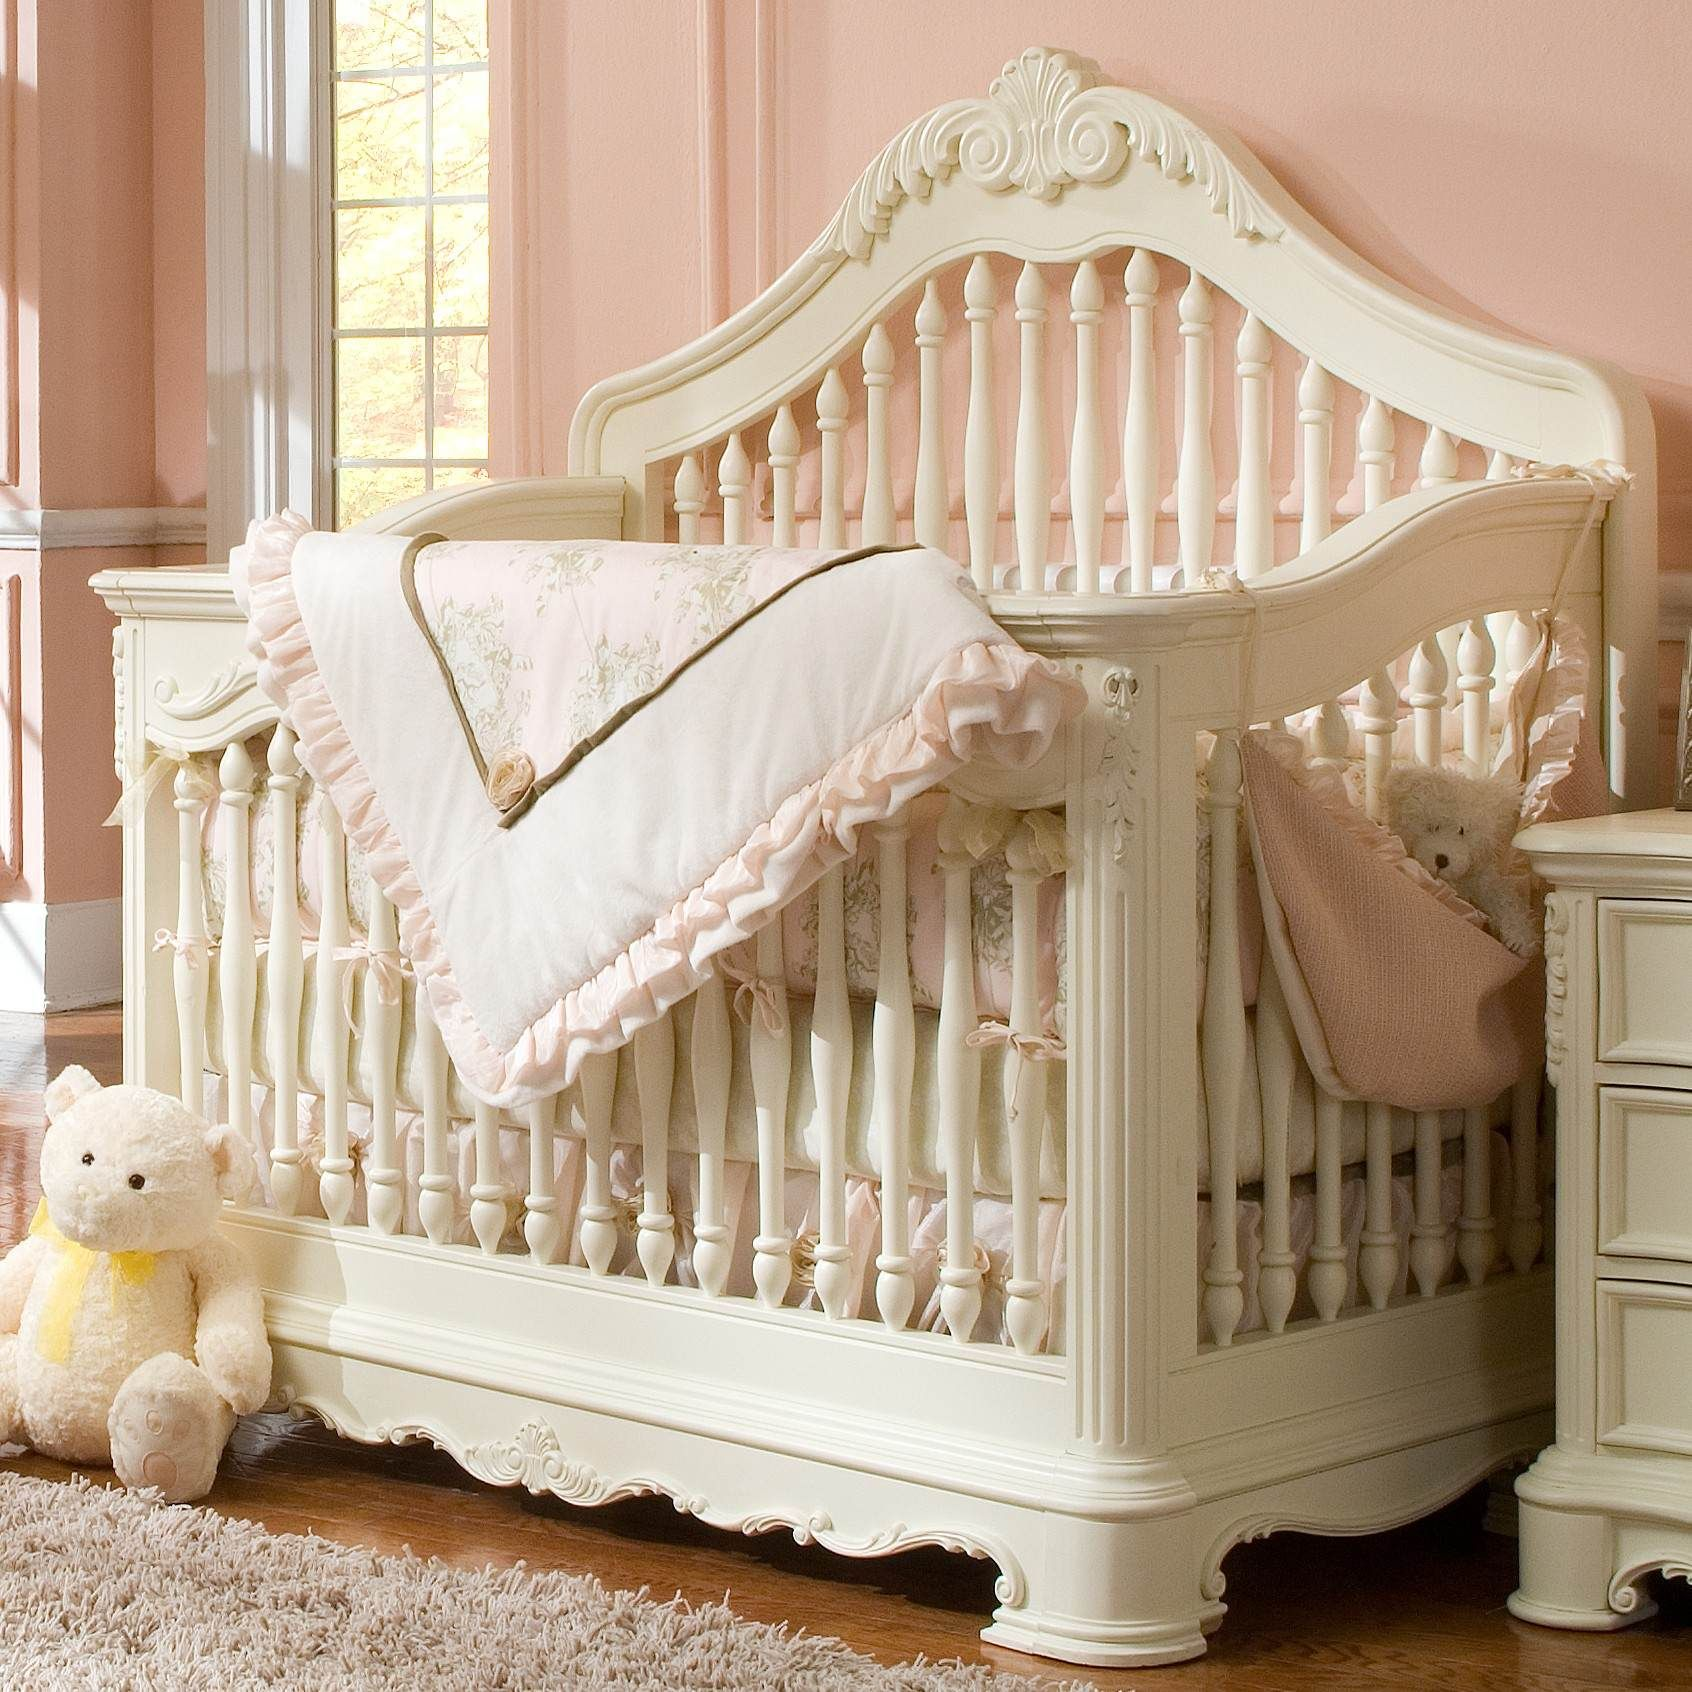 piece bedding the by set go reversible nojo little crib cribs on print collection vehicles shop ip brick inexpensive